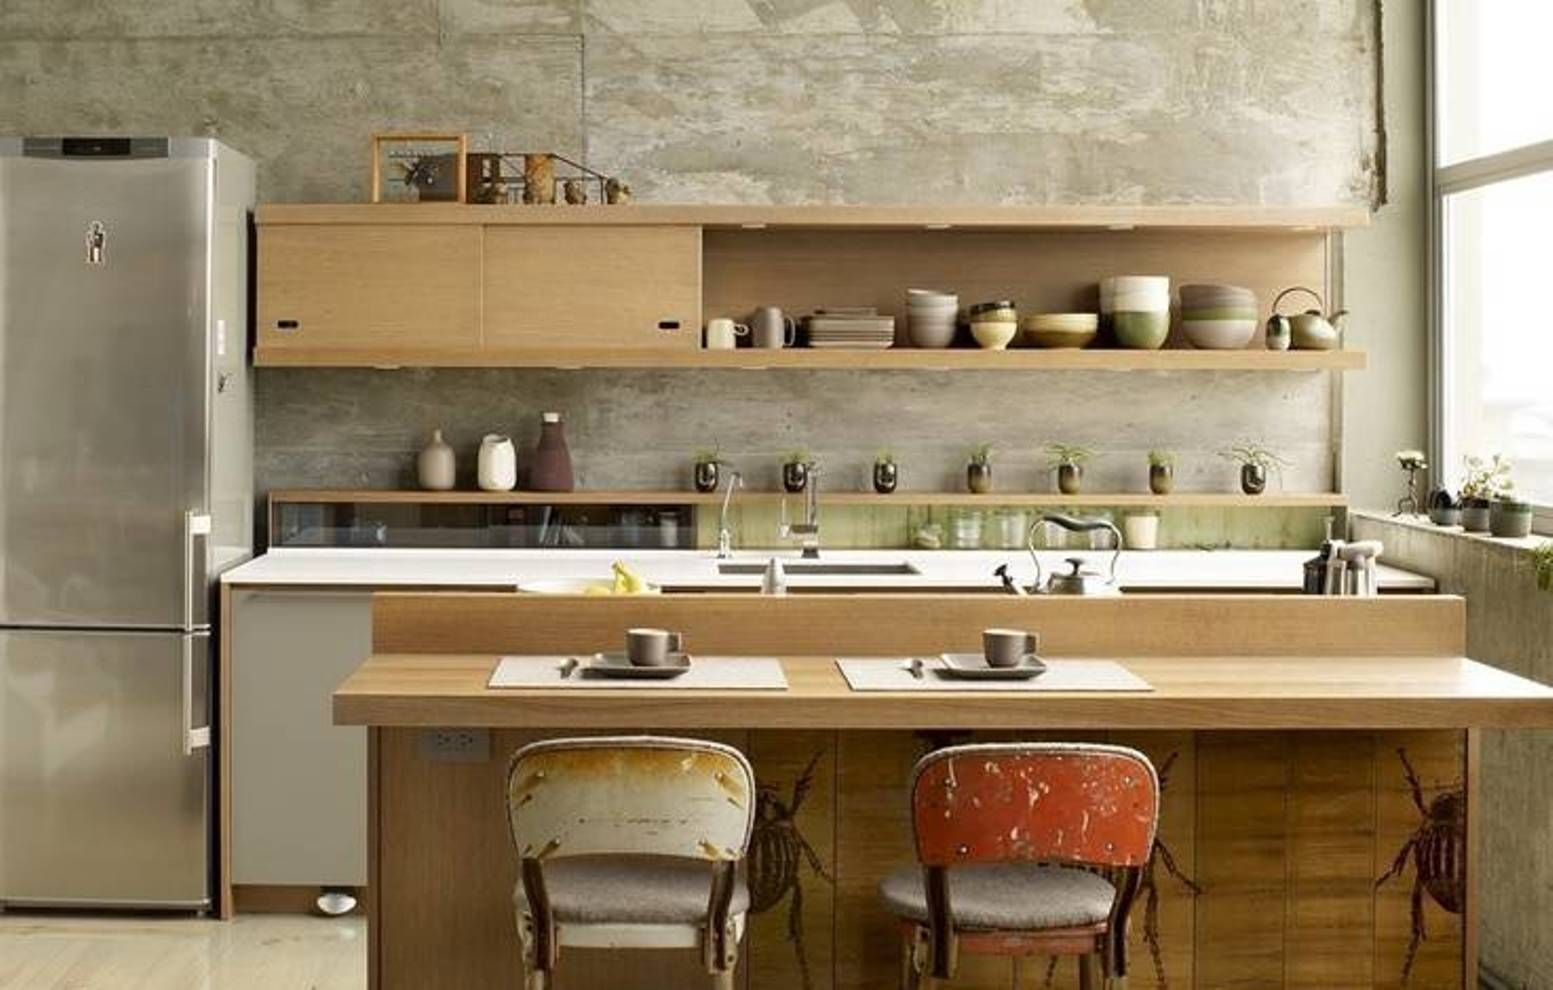 Modern Japanese Kitchen Design With With Classic Cabinet And